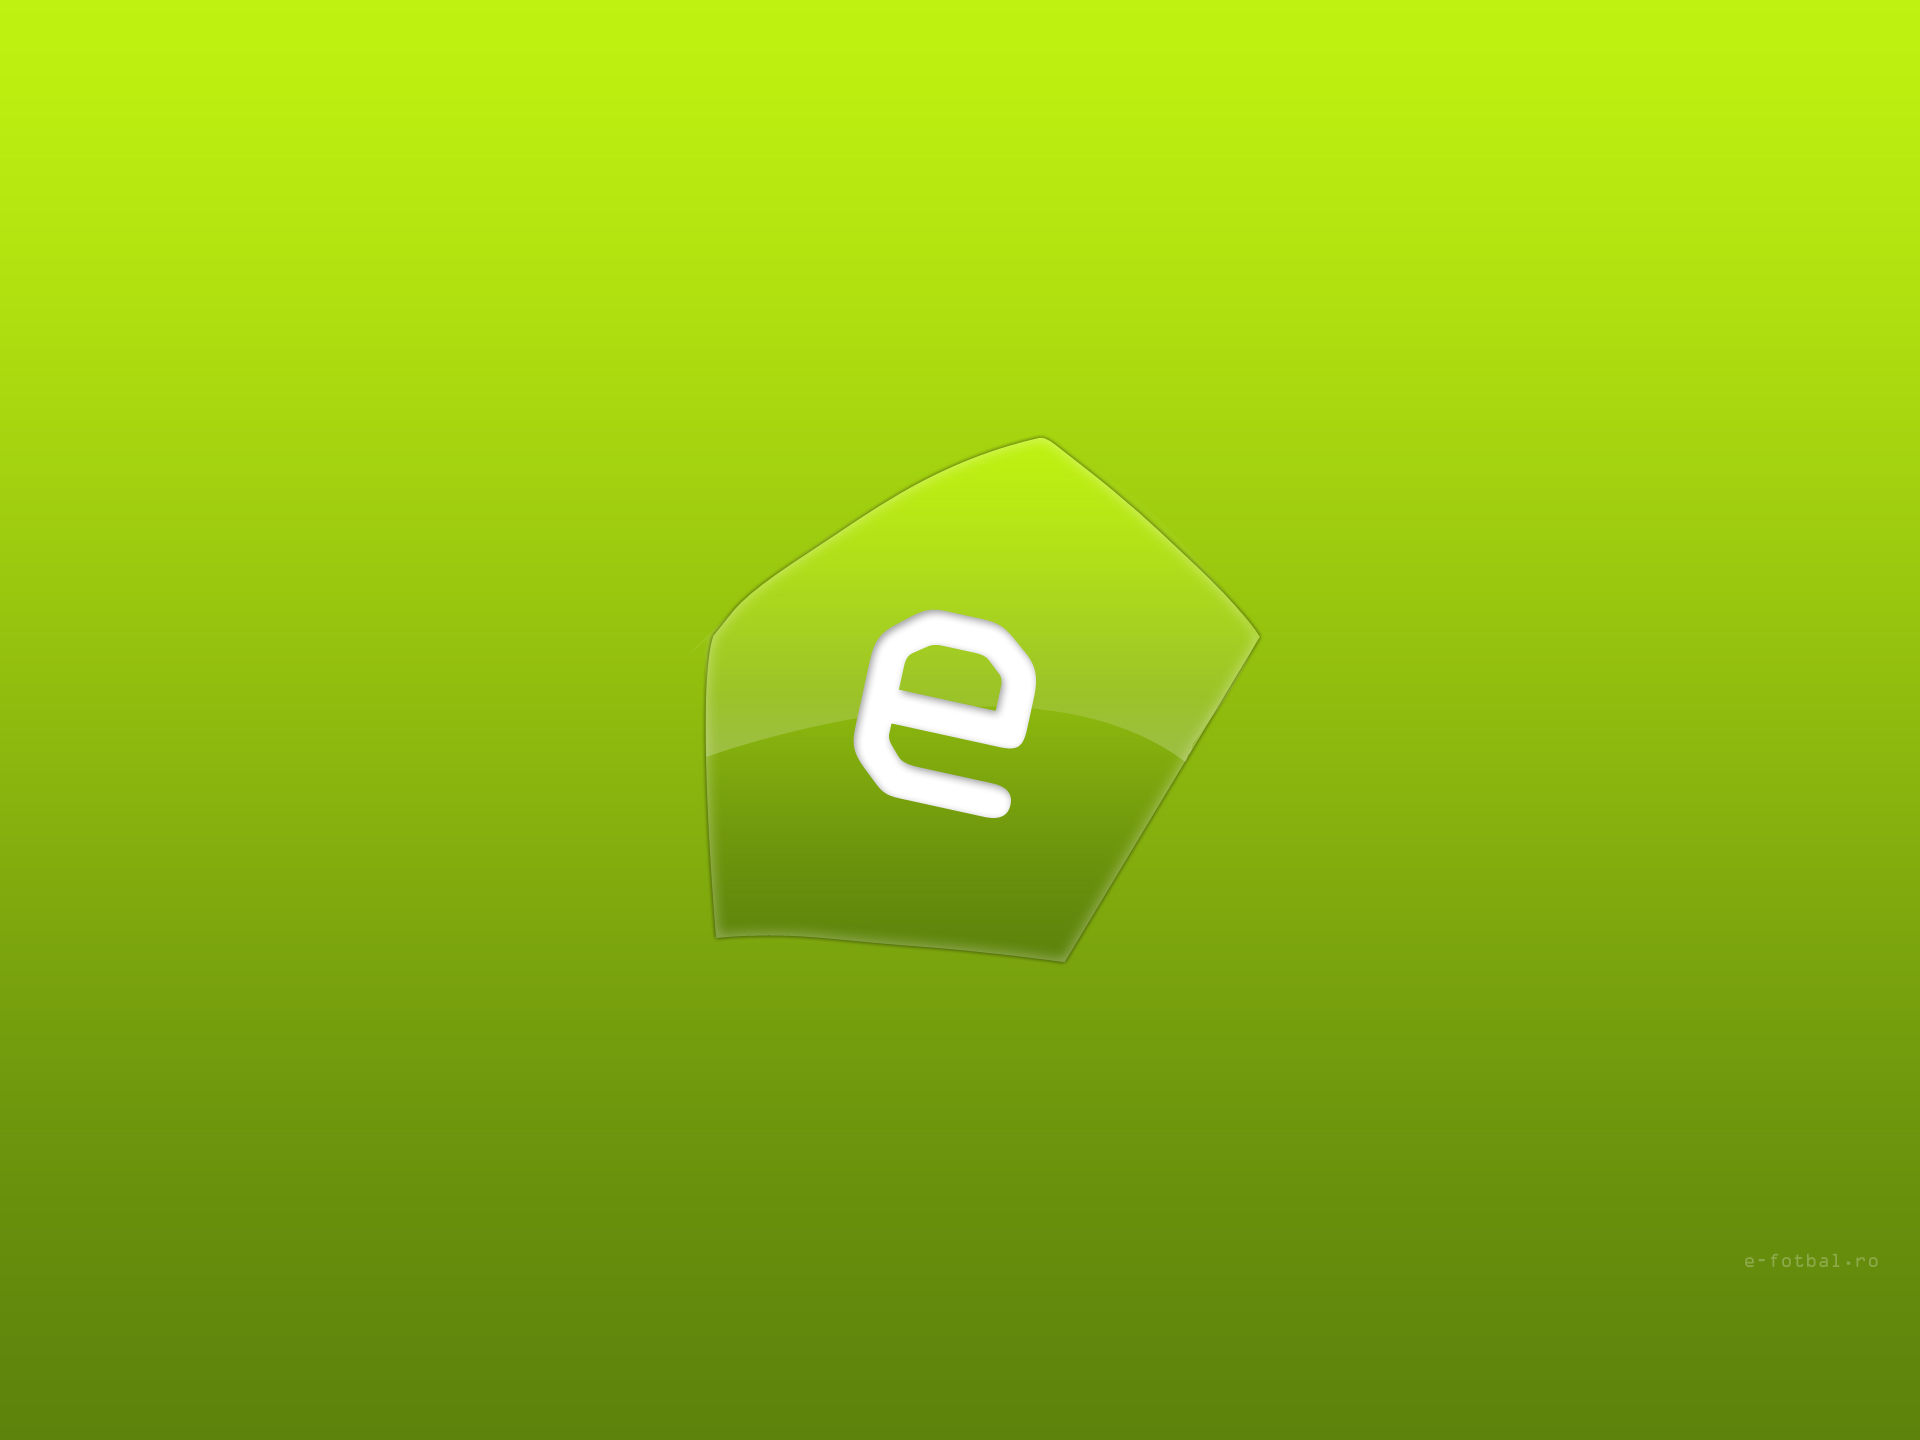 E Wallpapers